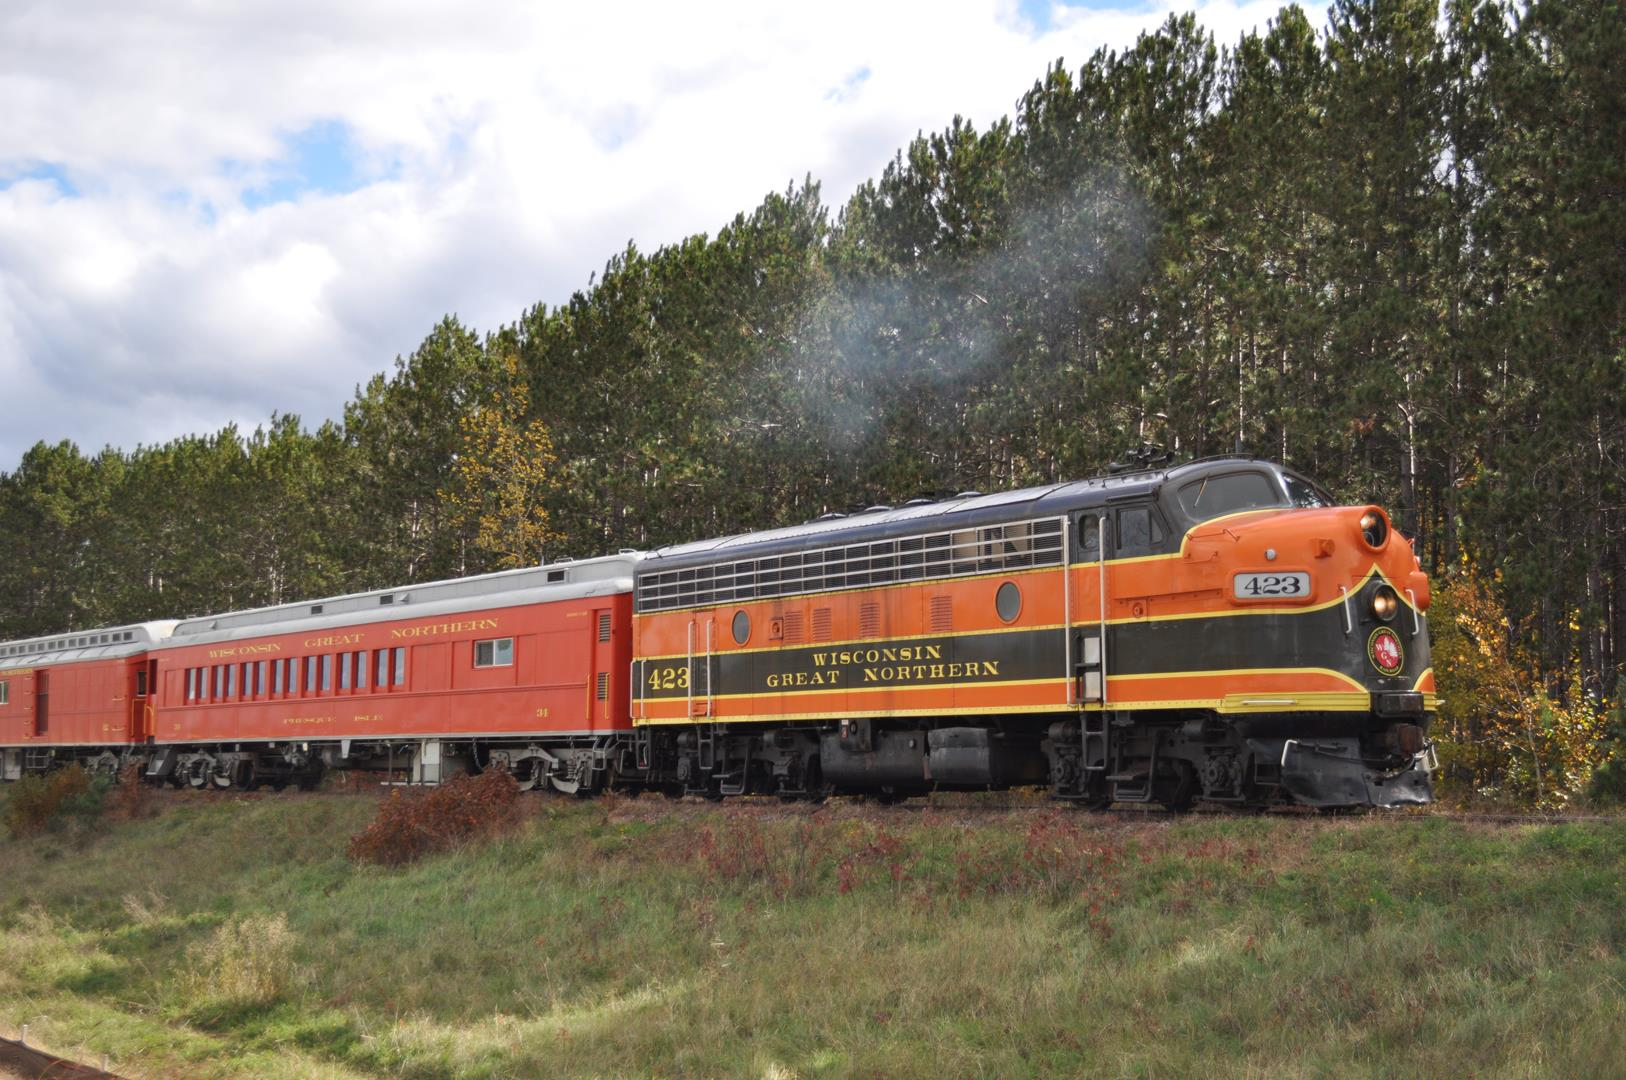 Great Northern Train Ride